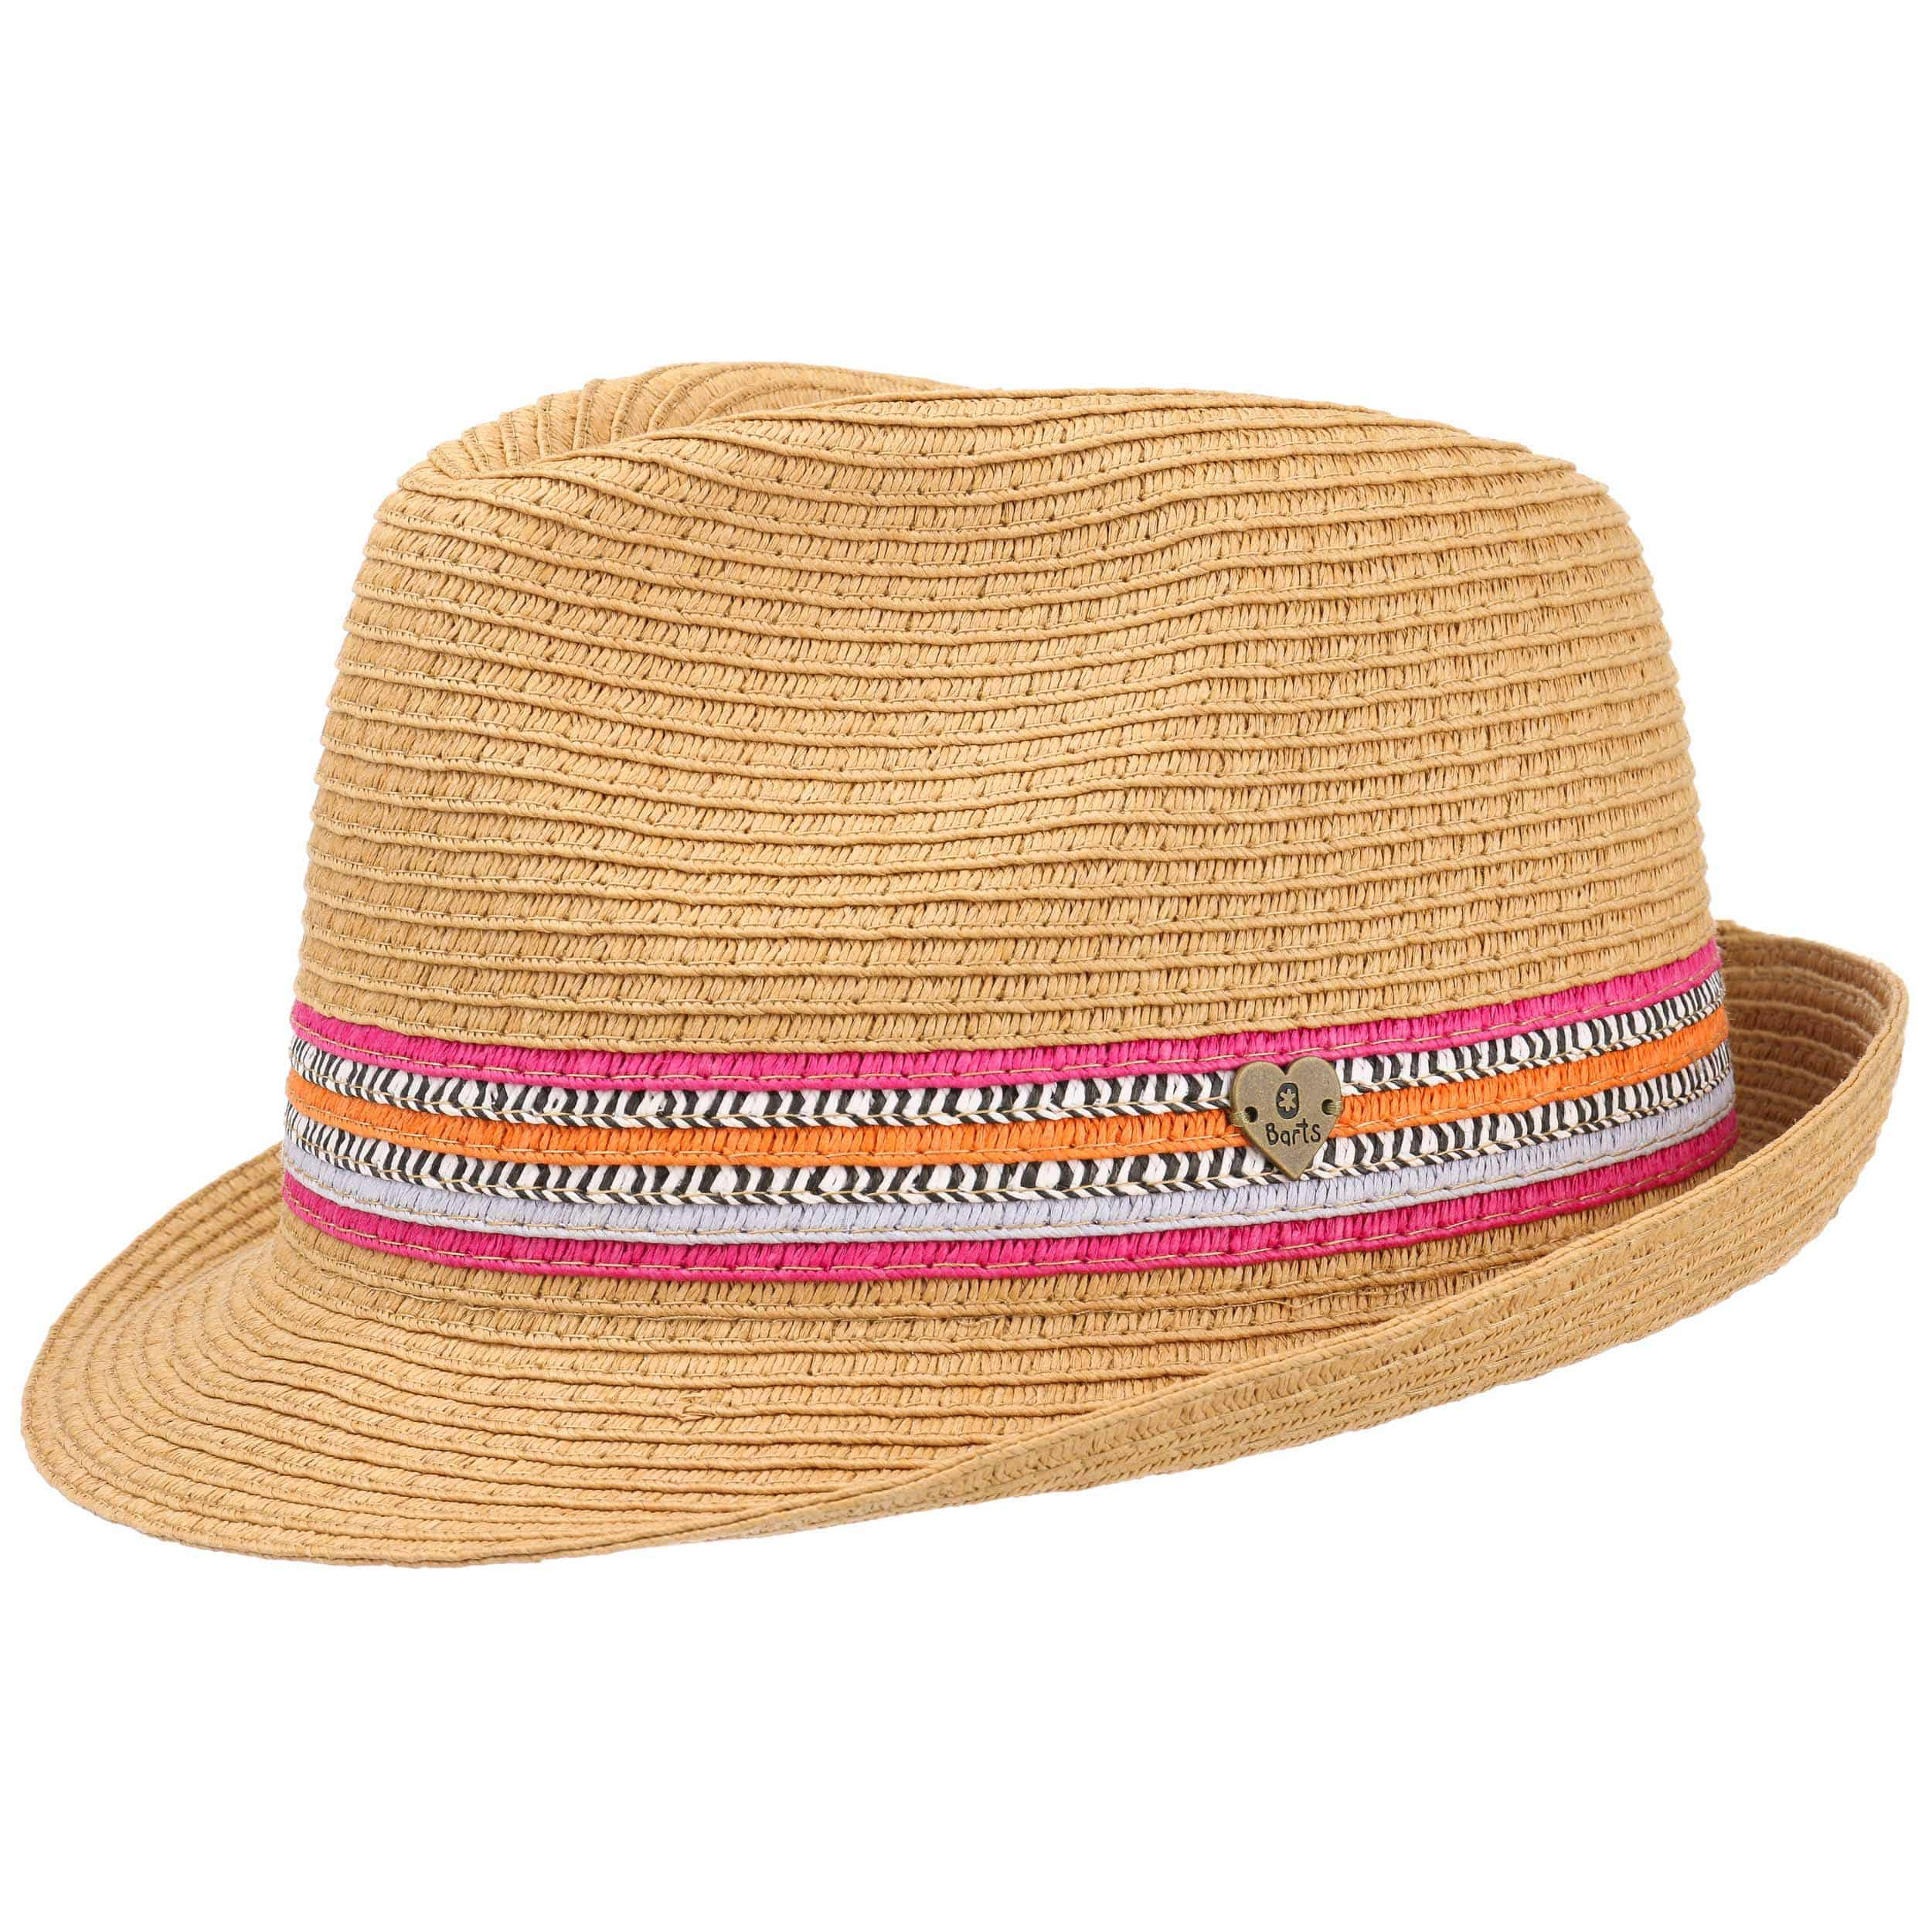 9e5a4e5c2 Summer Girls Trilby Kids Hat by Barts